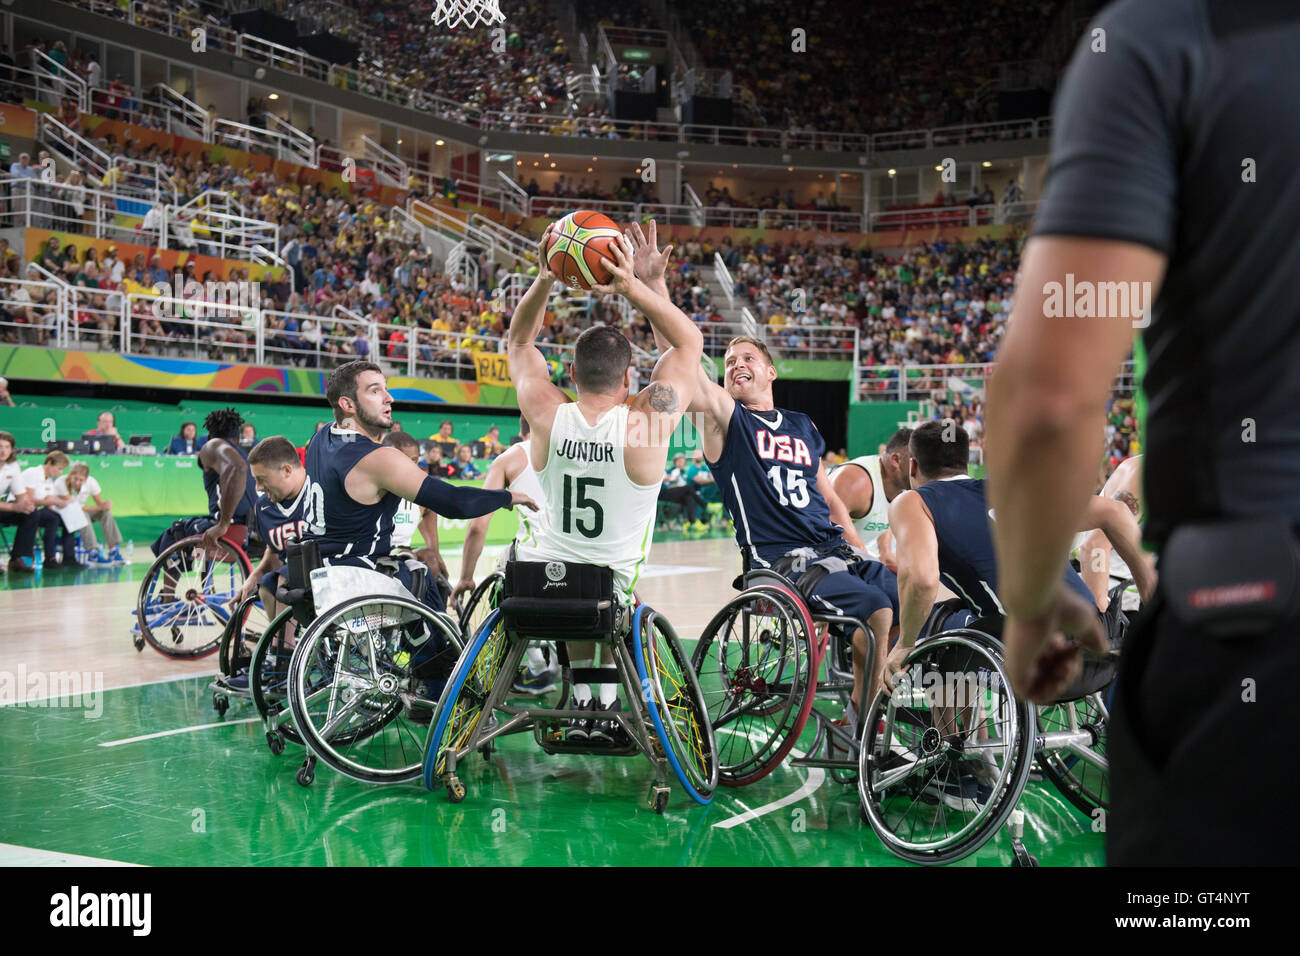 Rio de Janeiro, Brazil. 8th September, 2016. Men's wheelchair basketball action on the first day of competition - Stock Image